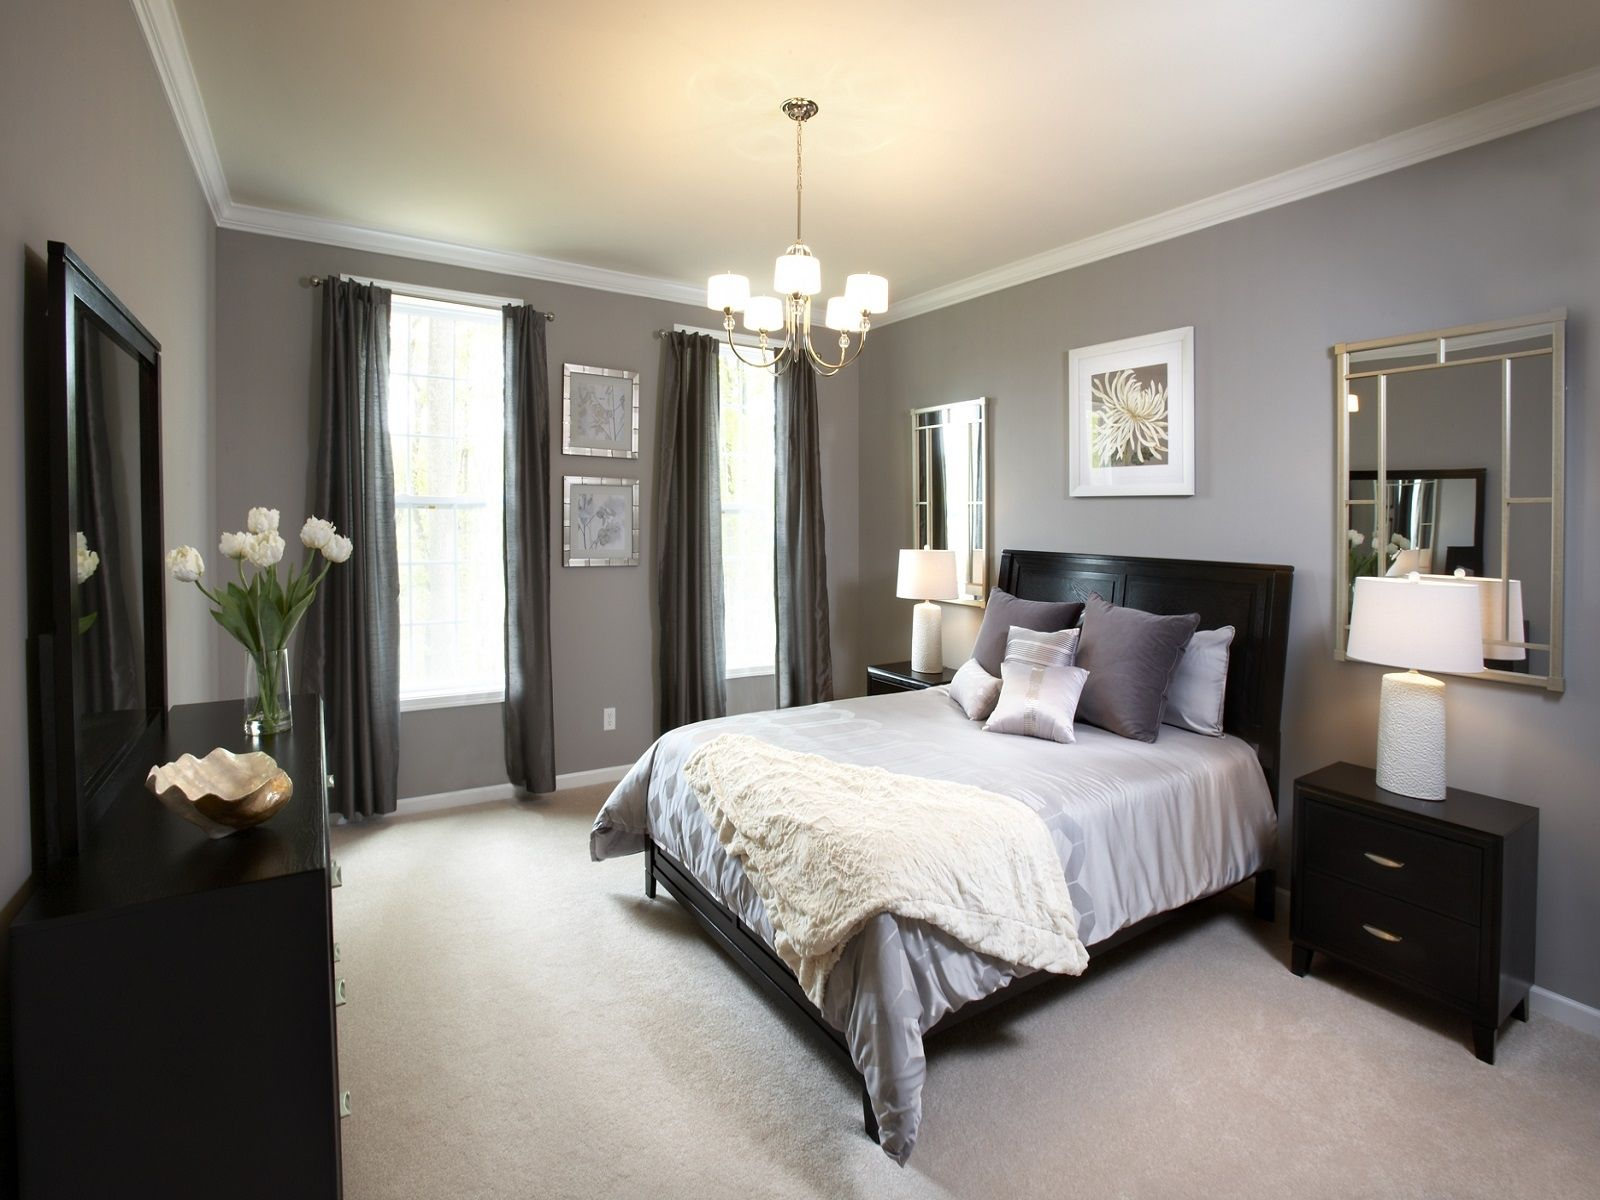 Black Painted Room Ideas brilliant decorating bedroom ideas with black bed and dark dresser